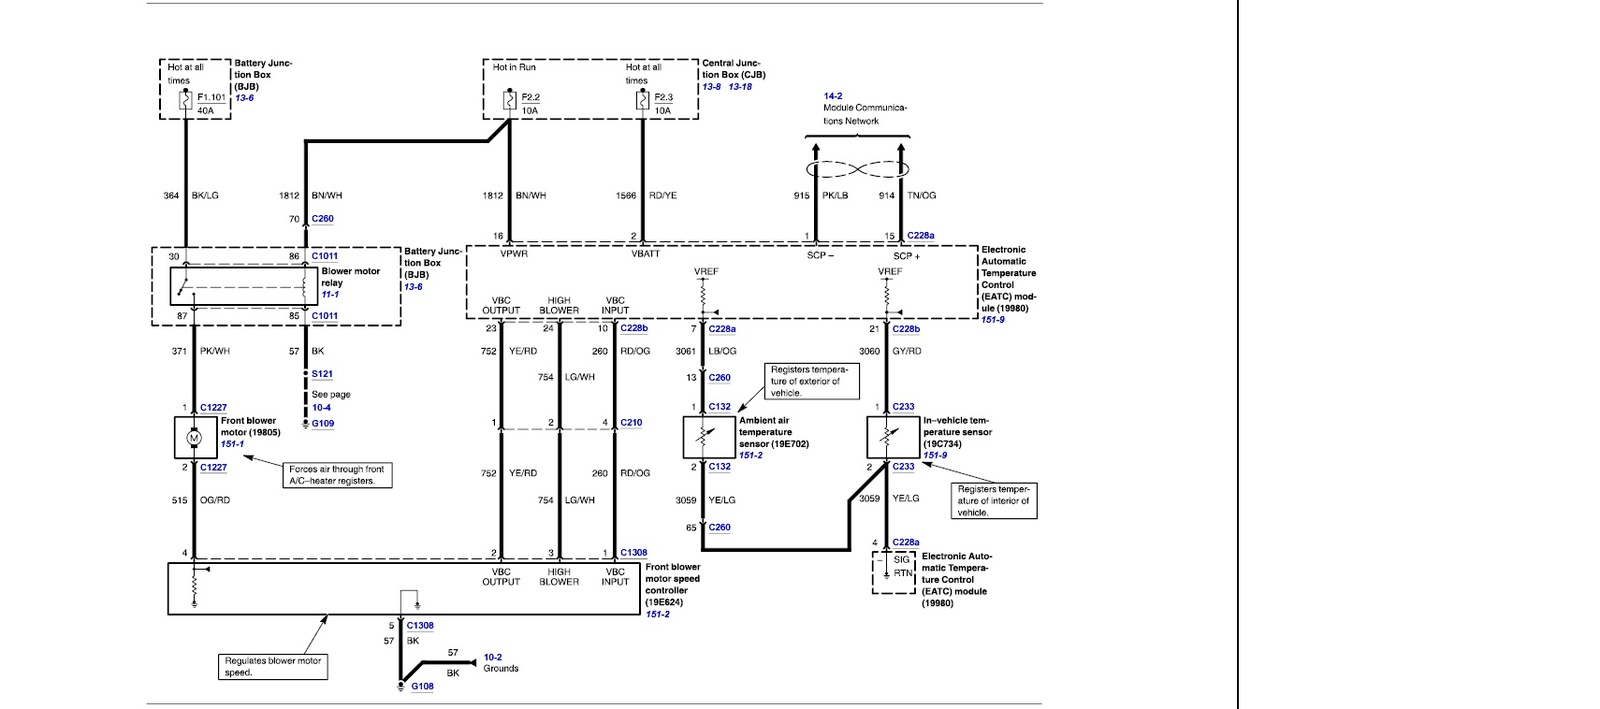 pic 8323870579460996013 1600x1200?resize=665%2C295&ssl=1 mobile climate control wiring diagram wiring diagram mobile climate control wiring diagram at edmiracle.co